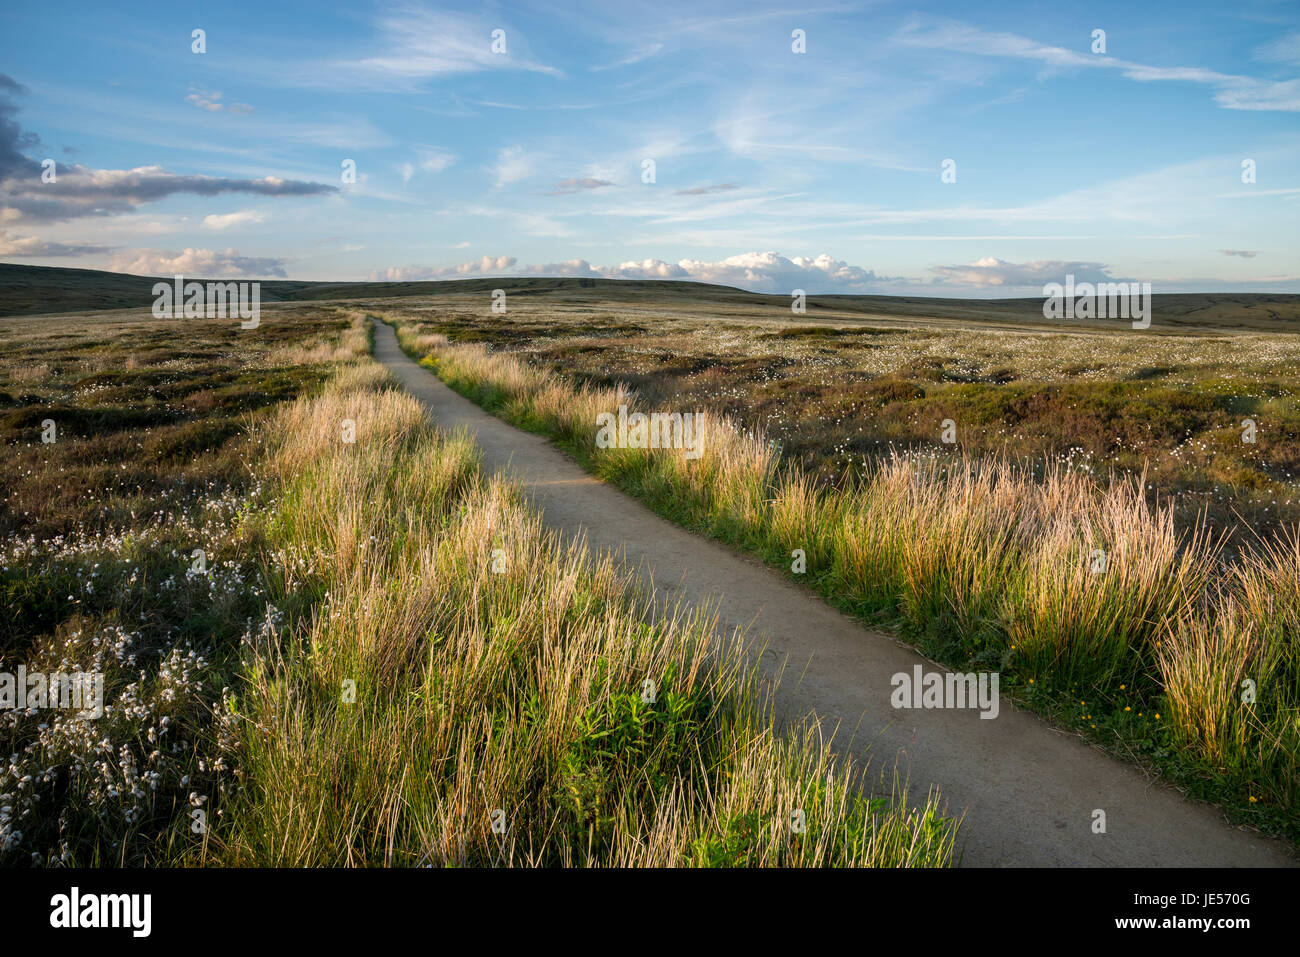 The Pennine way near Glossop, North Derbyshire, England. - Stock Image